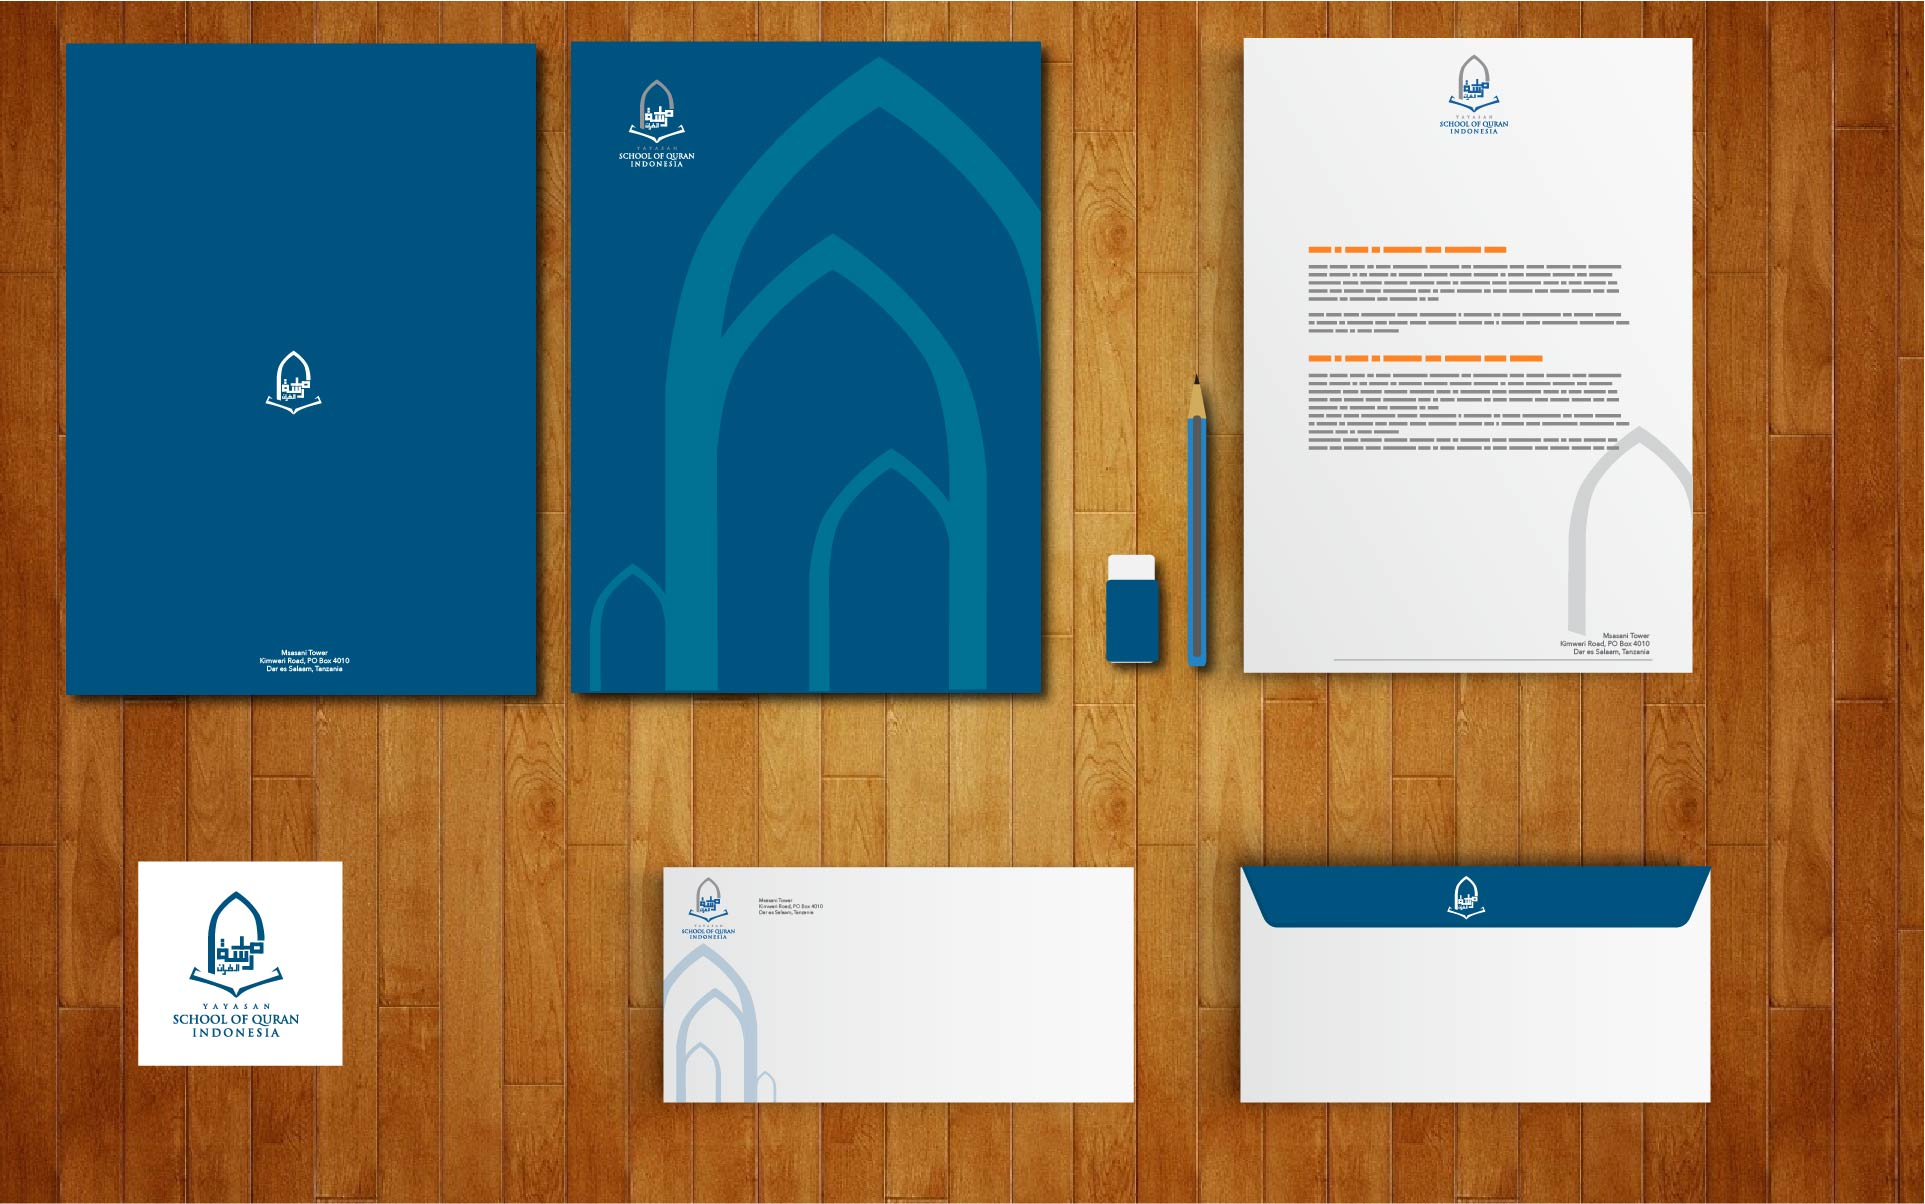 Corporate Identity House of Quran